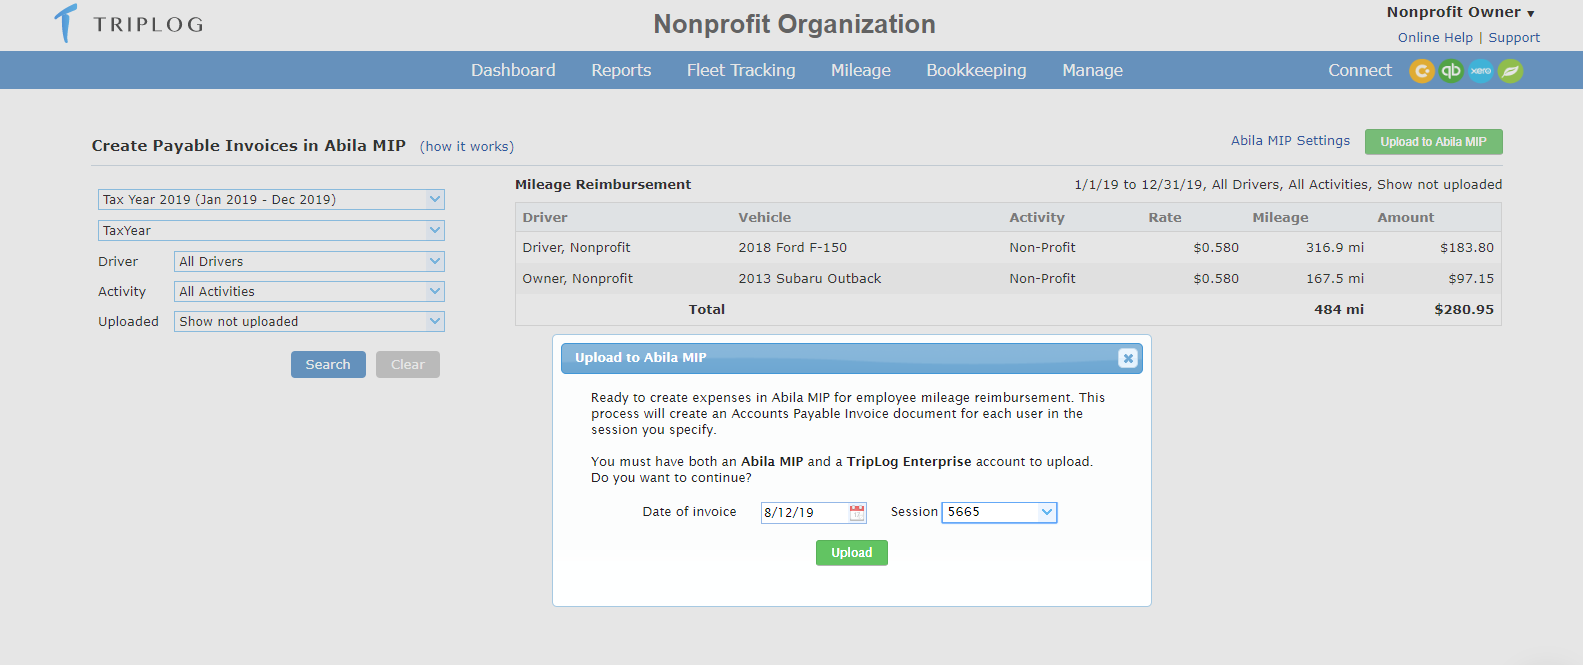 Triplog Integration with Abila MIP Fund Accounting software